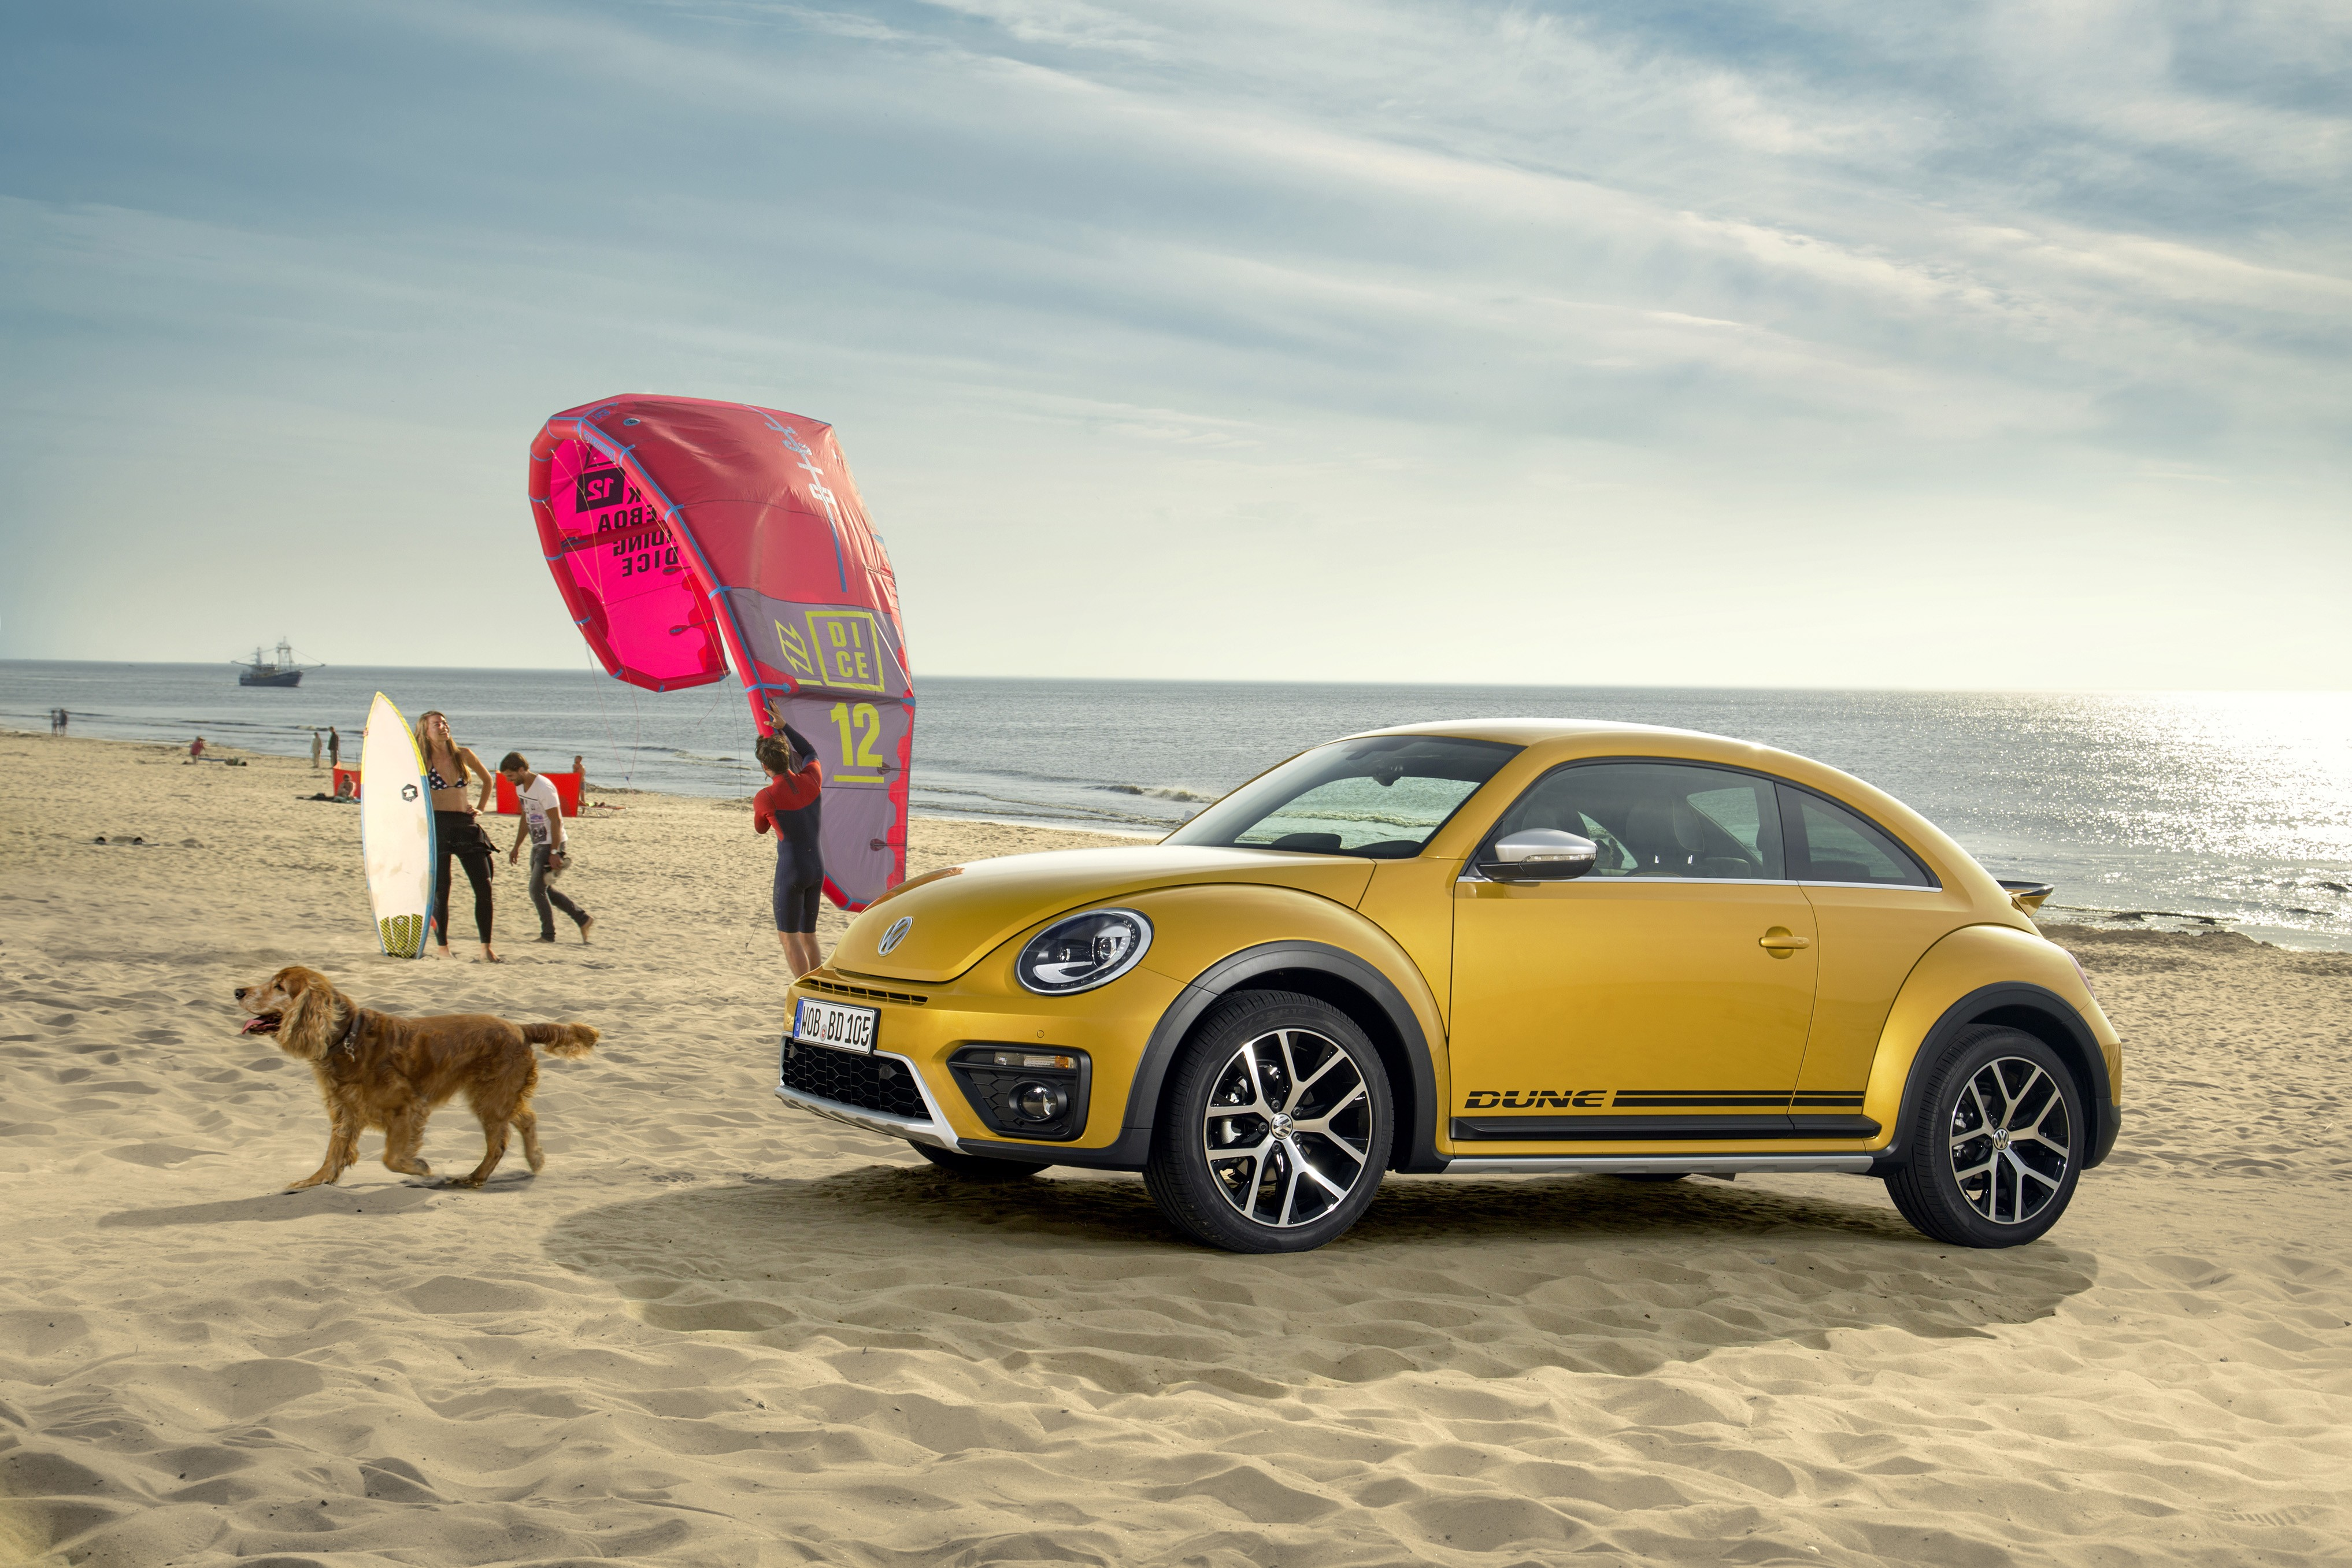 Wallpaper Volkswagen Beetle Dune Yellow Beach Sky Dog